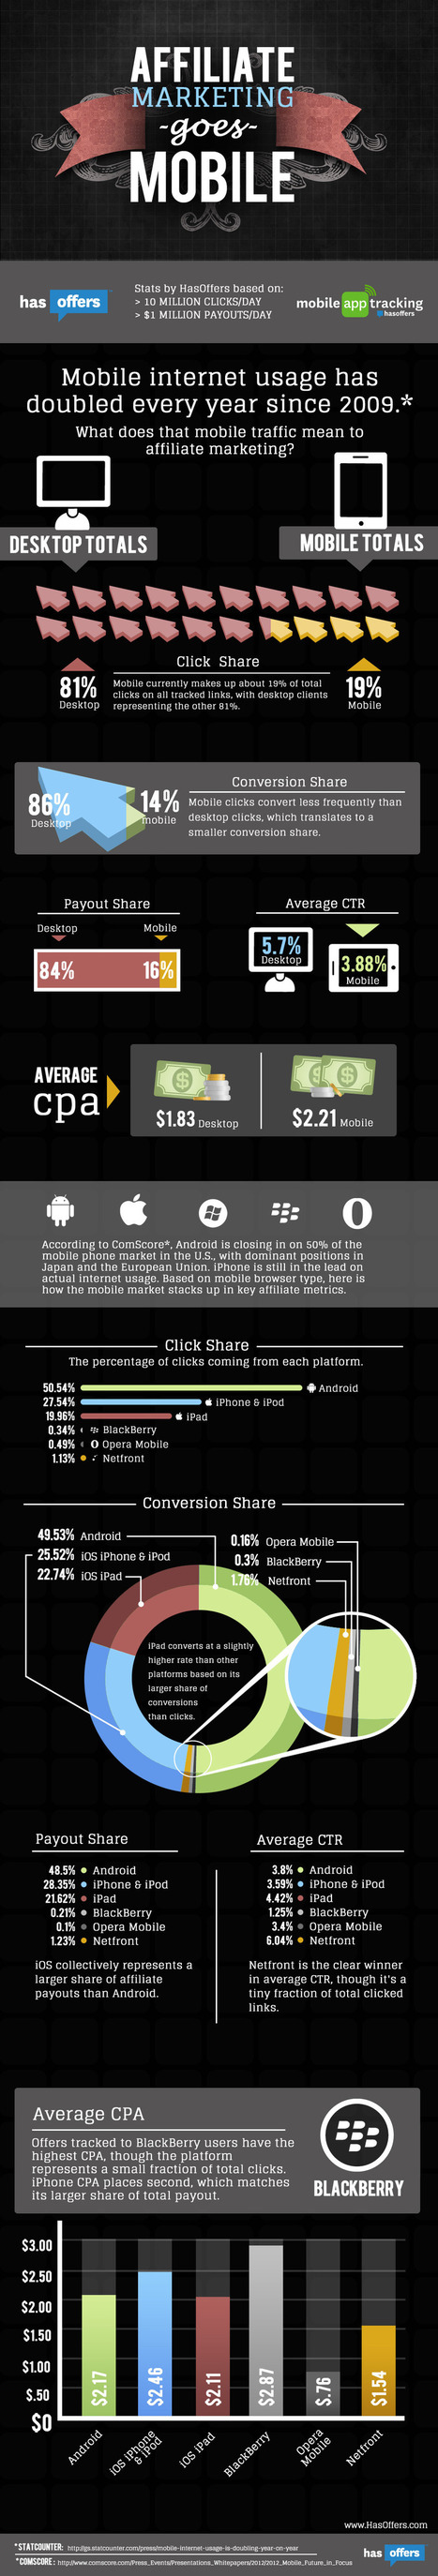 Infographic – Affiliate Marketing Goes Mobile | FromWeb2Mobile | PHARMA GEEK | business app developers | Scoop.it